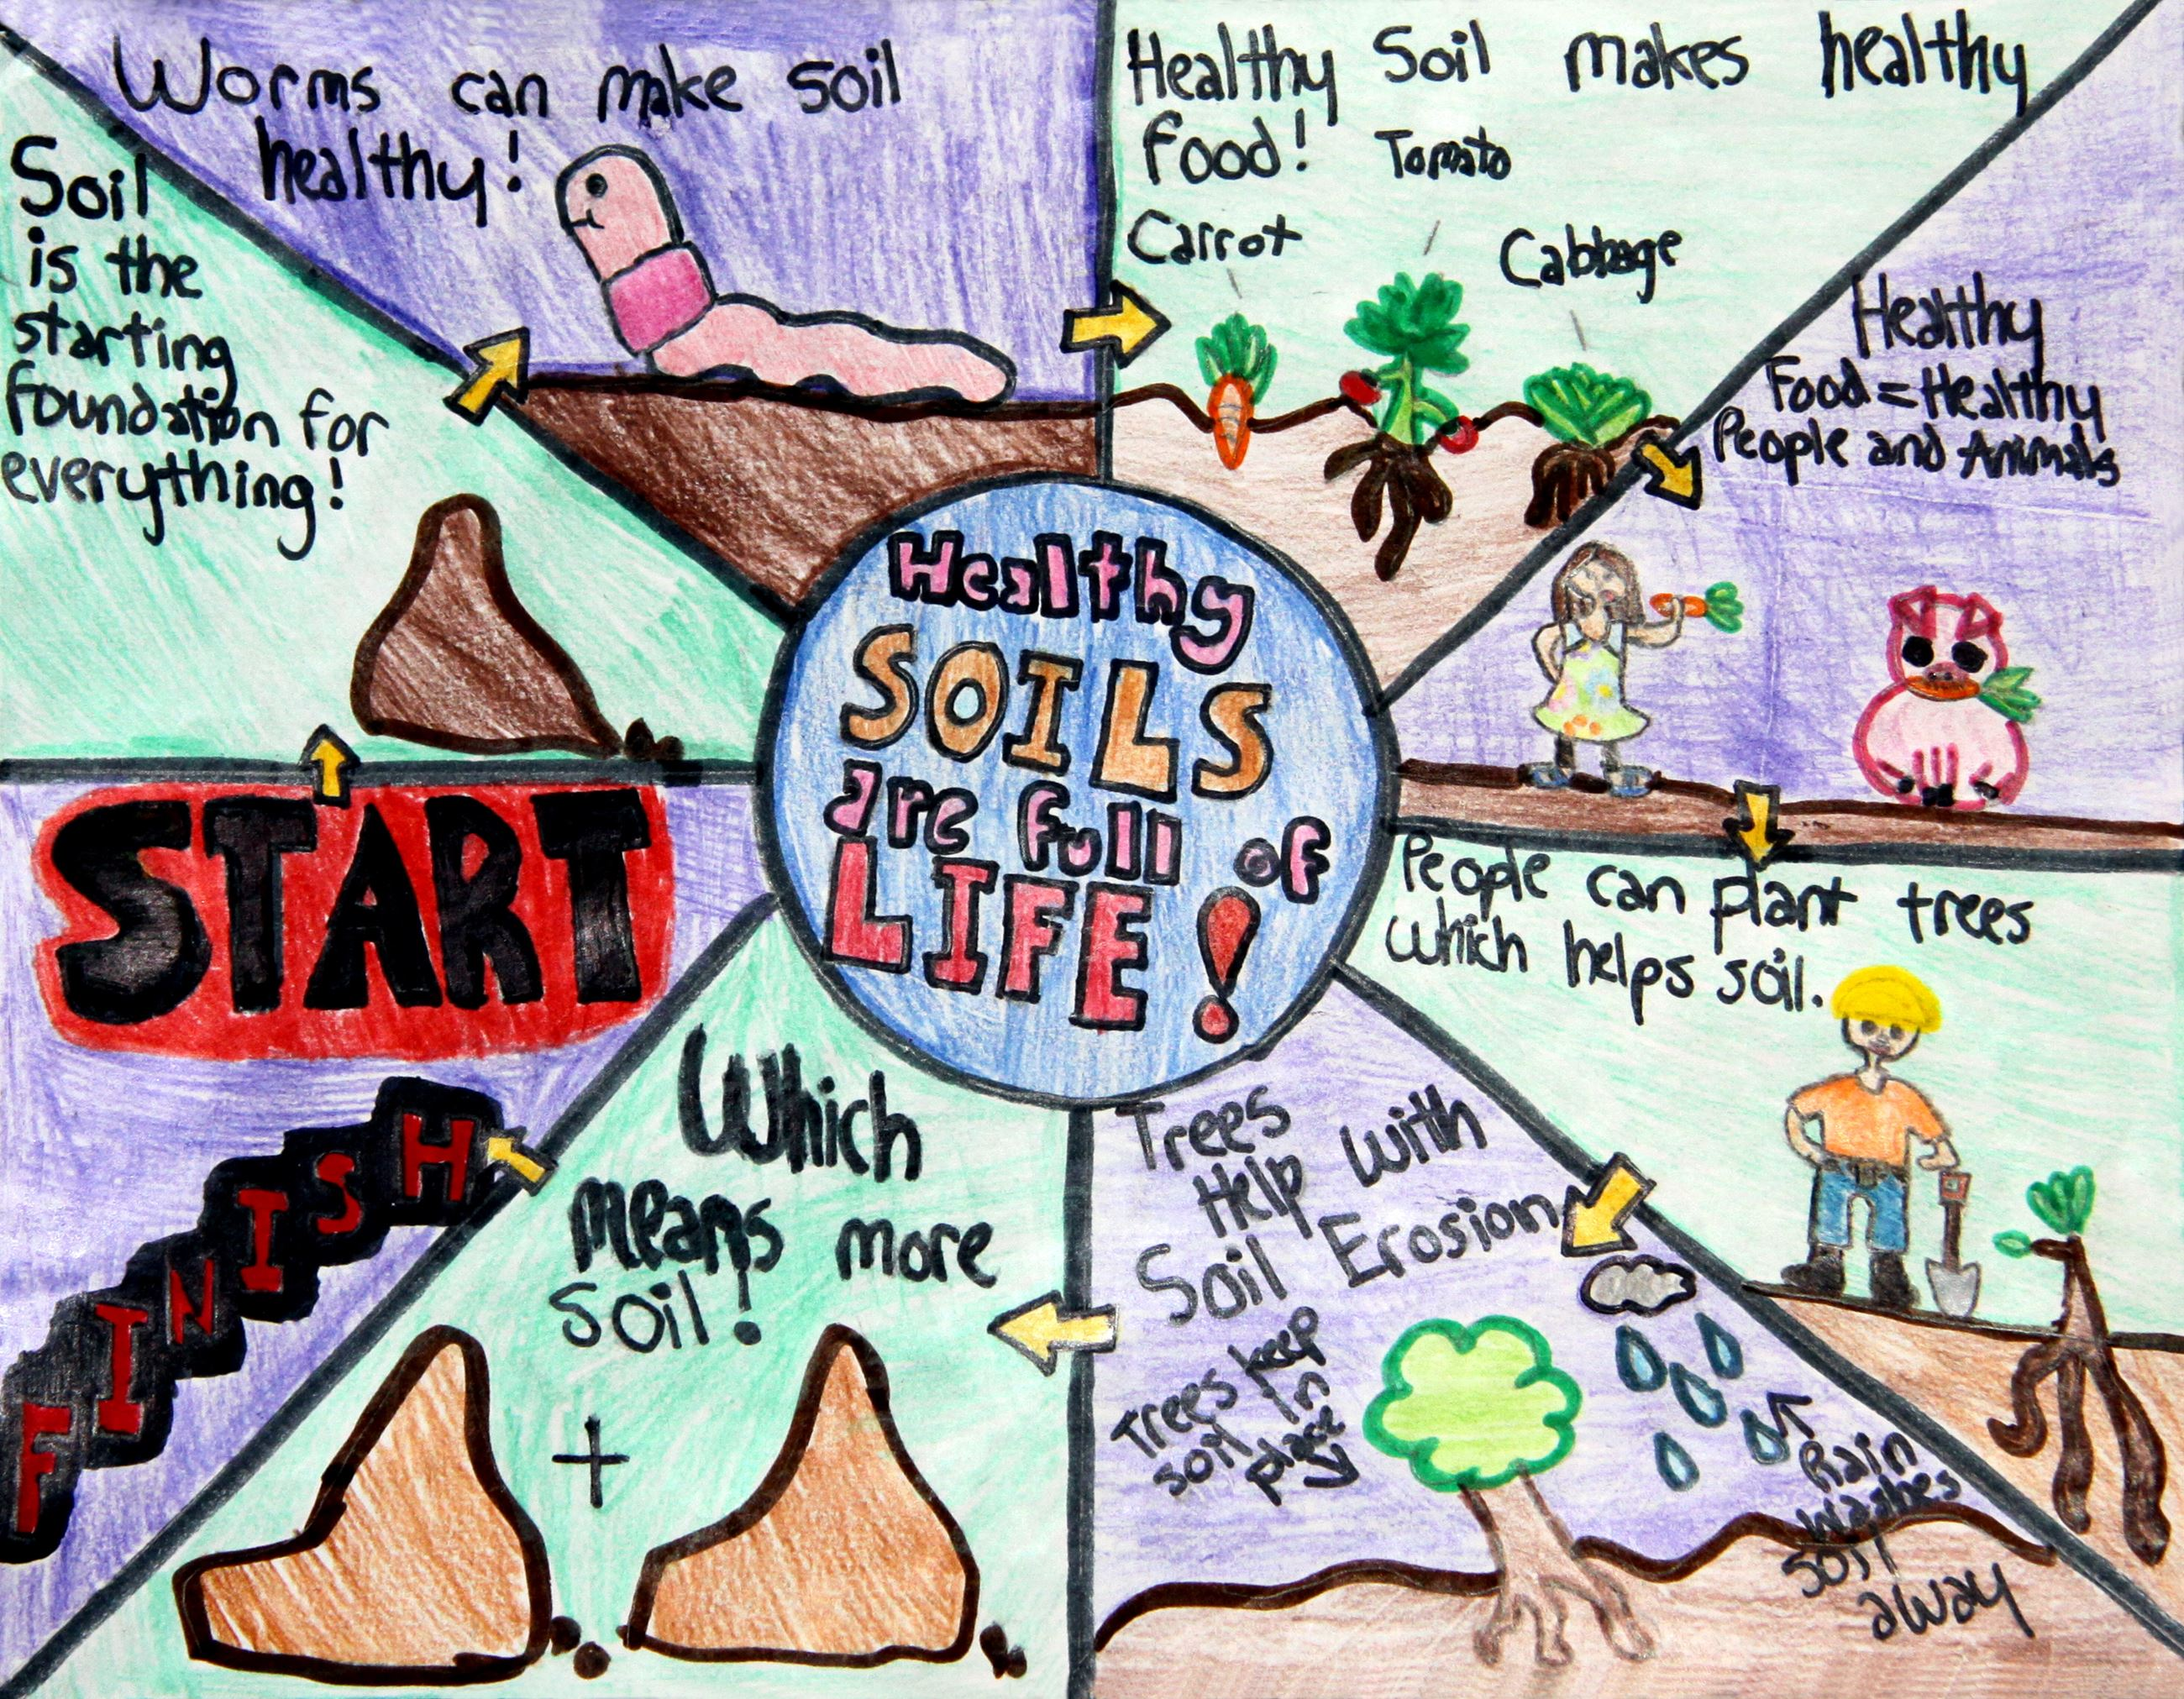 Grade 4 to 6, First Place Winner: Haley Hernandez